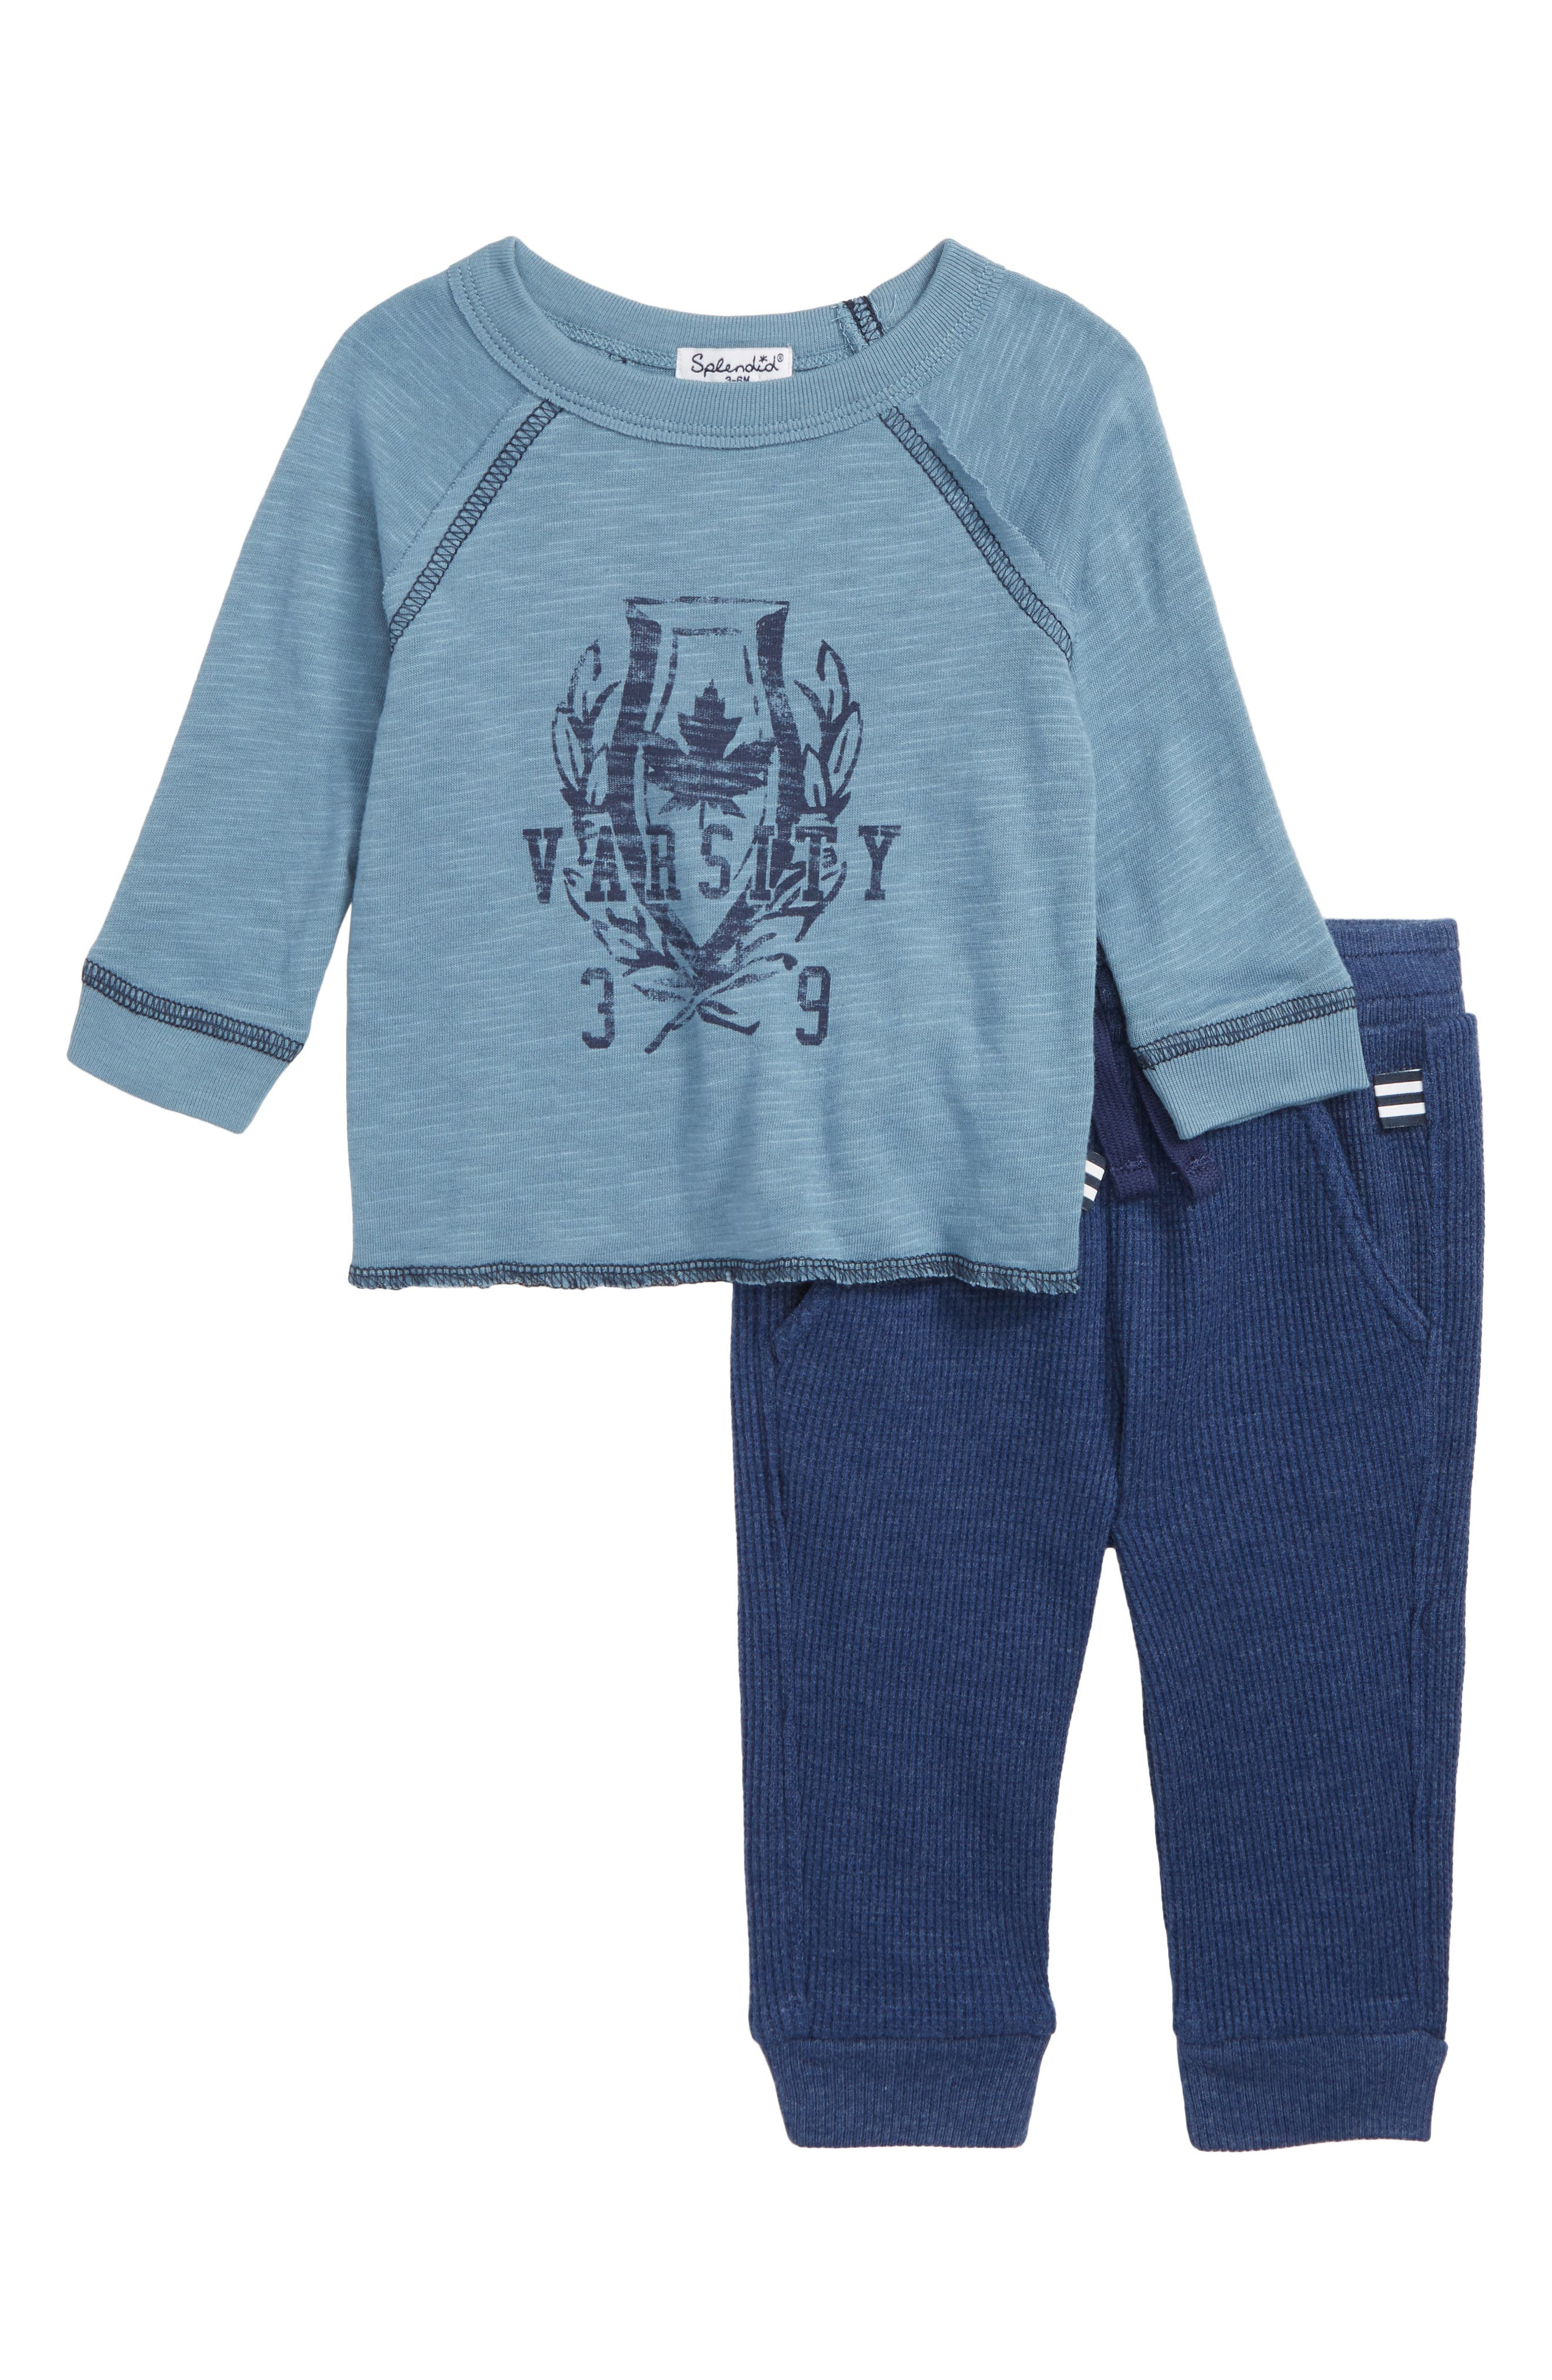 Raglan T-Shirt & Thermal Pants Set,                         Main,                         color, PROVENCE BLUE